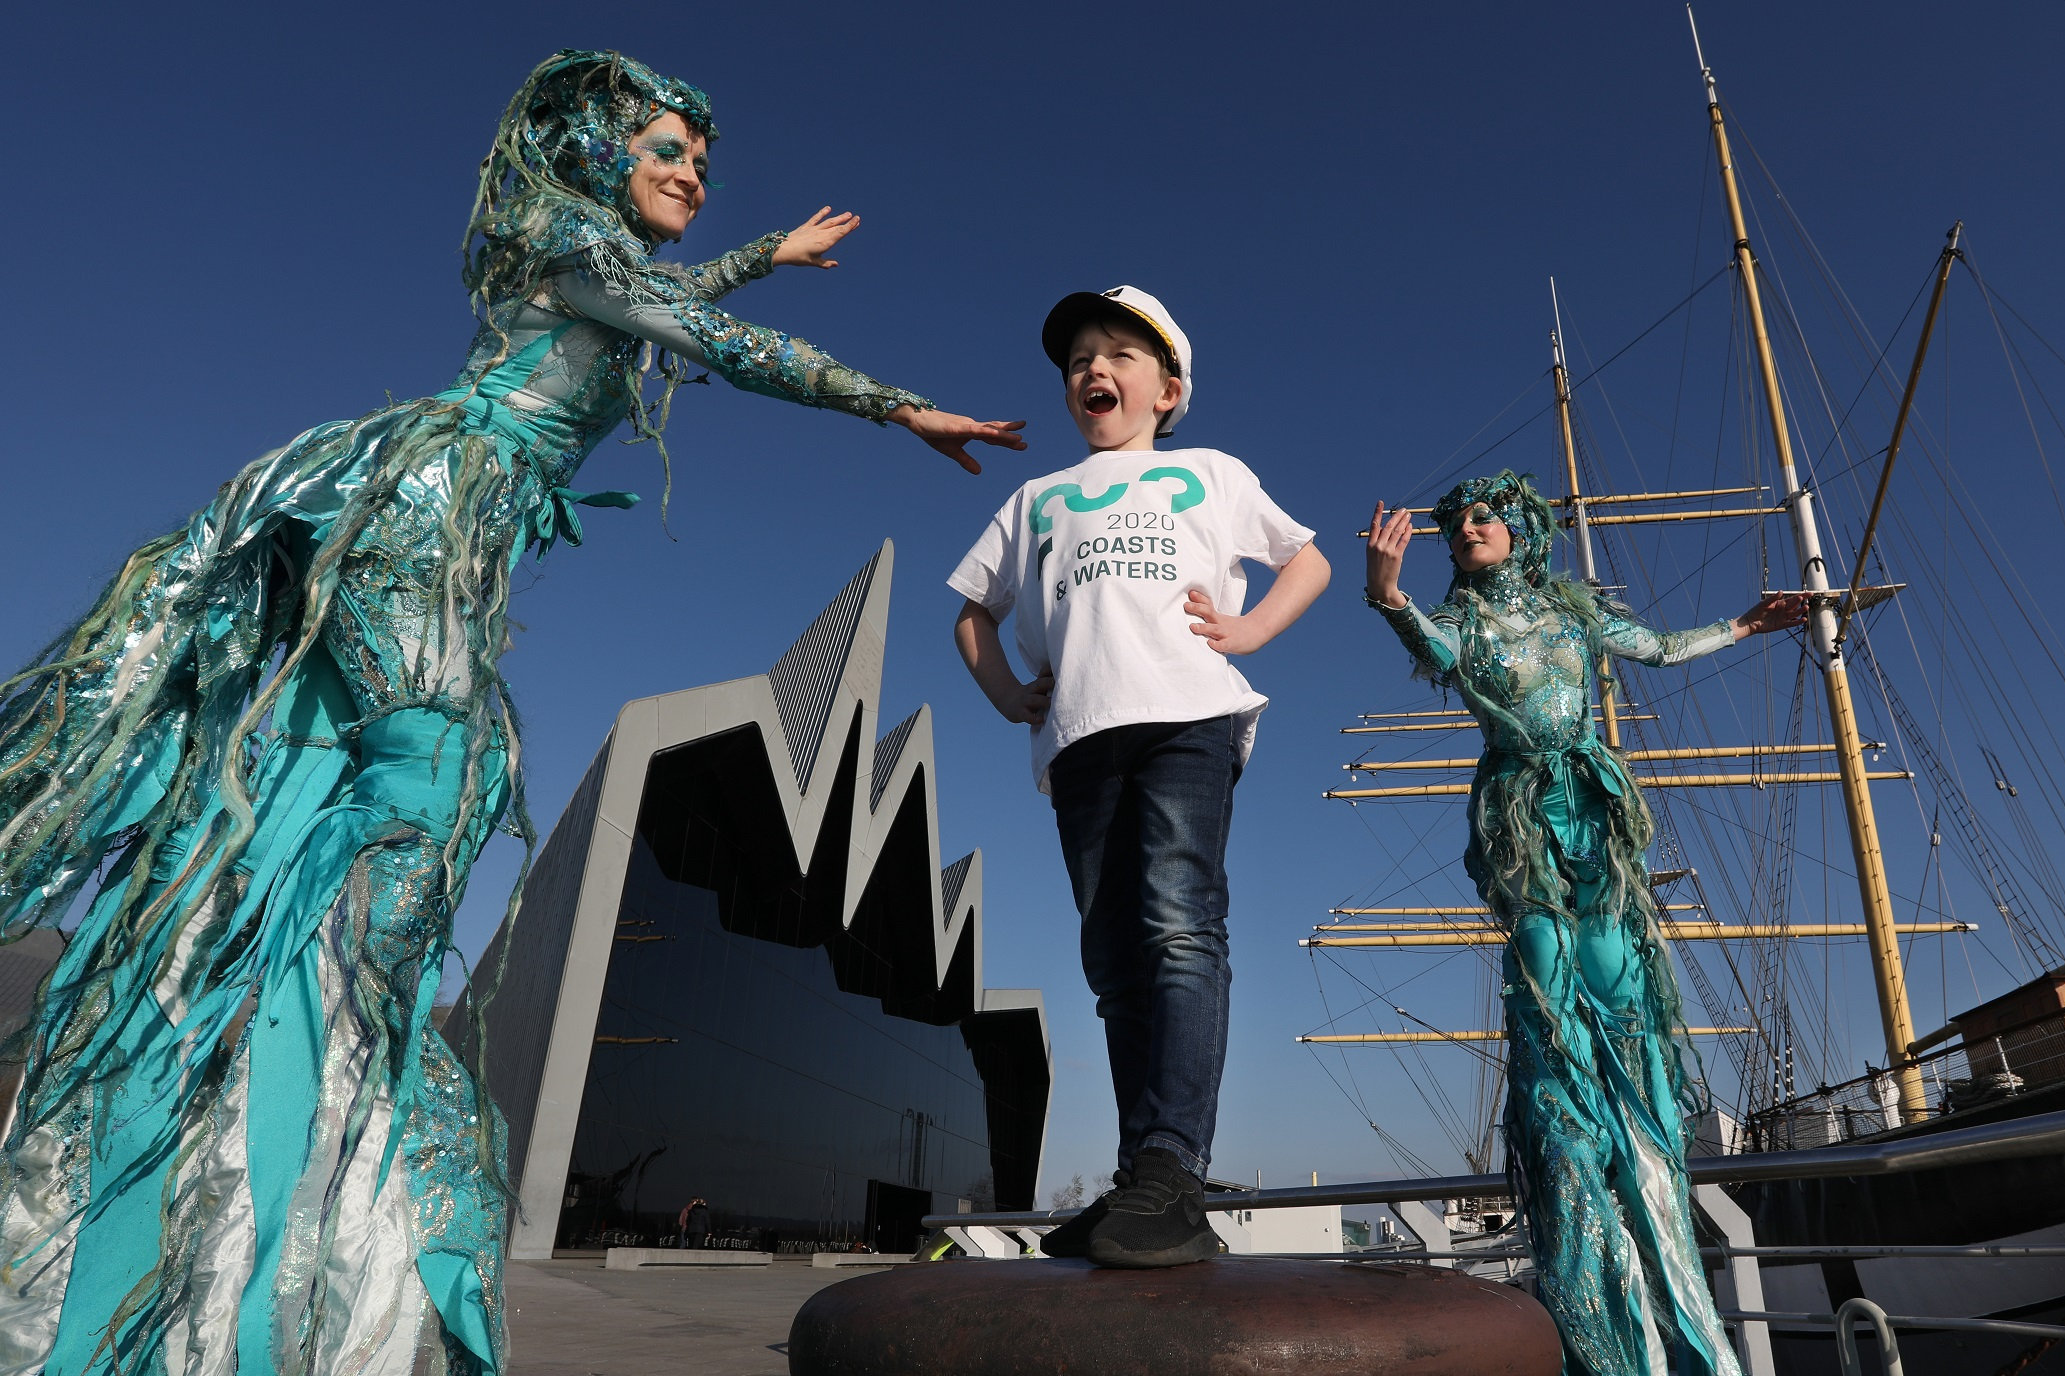 Scotland's year of Coasts and Waters officially launched